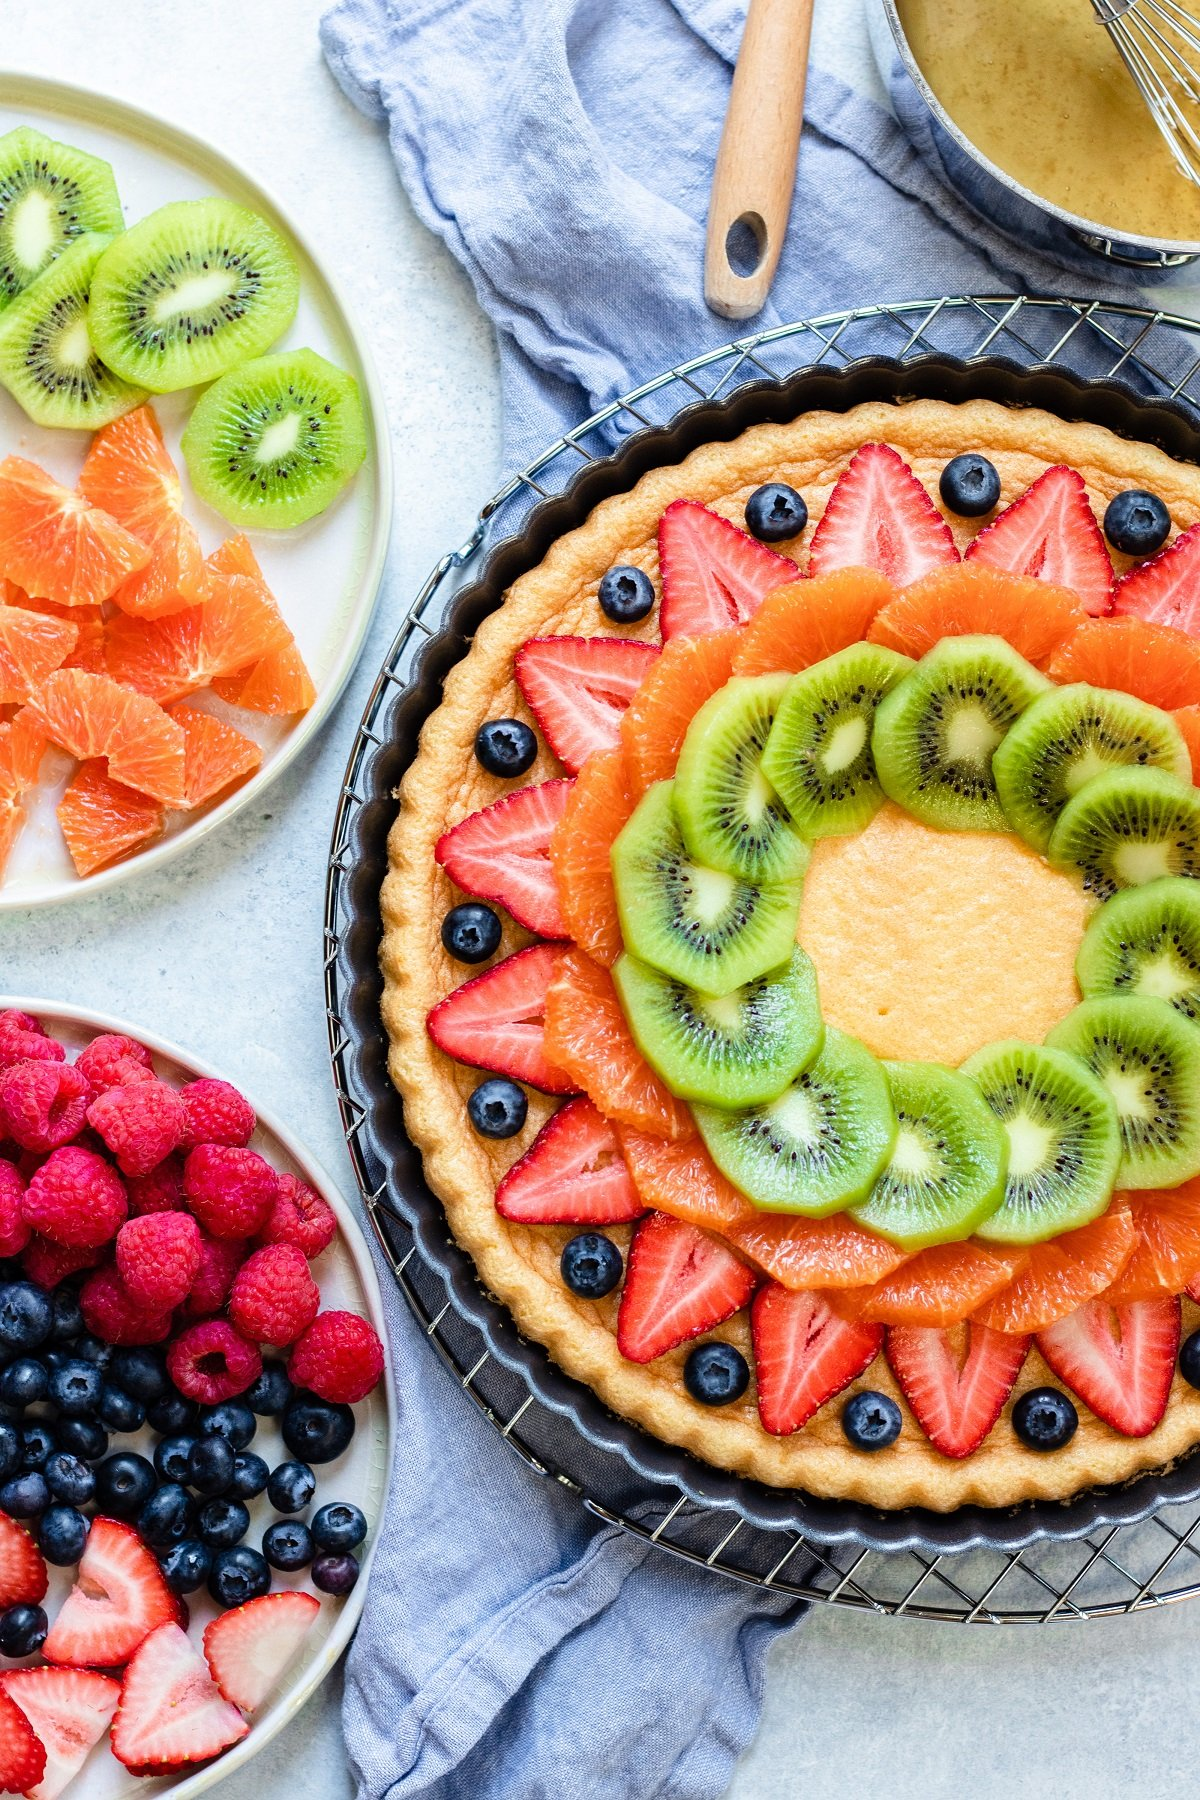 sliced strawberries, kiwi and oranges along with blueberries getting arranged over spongecake